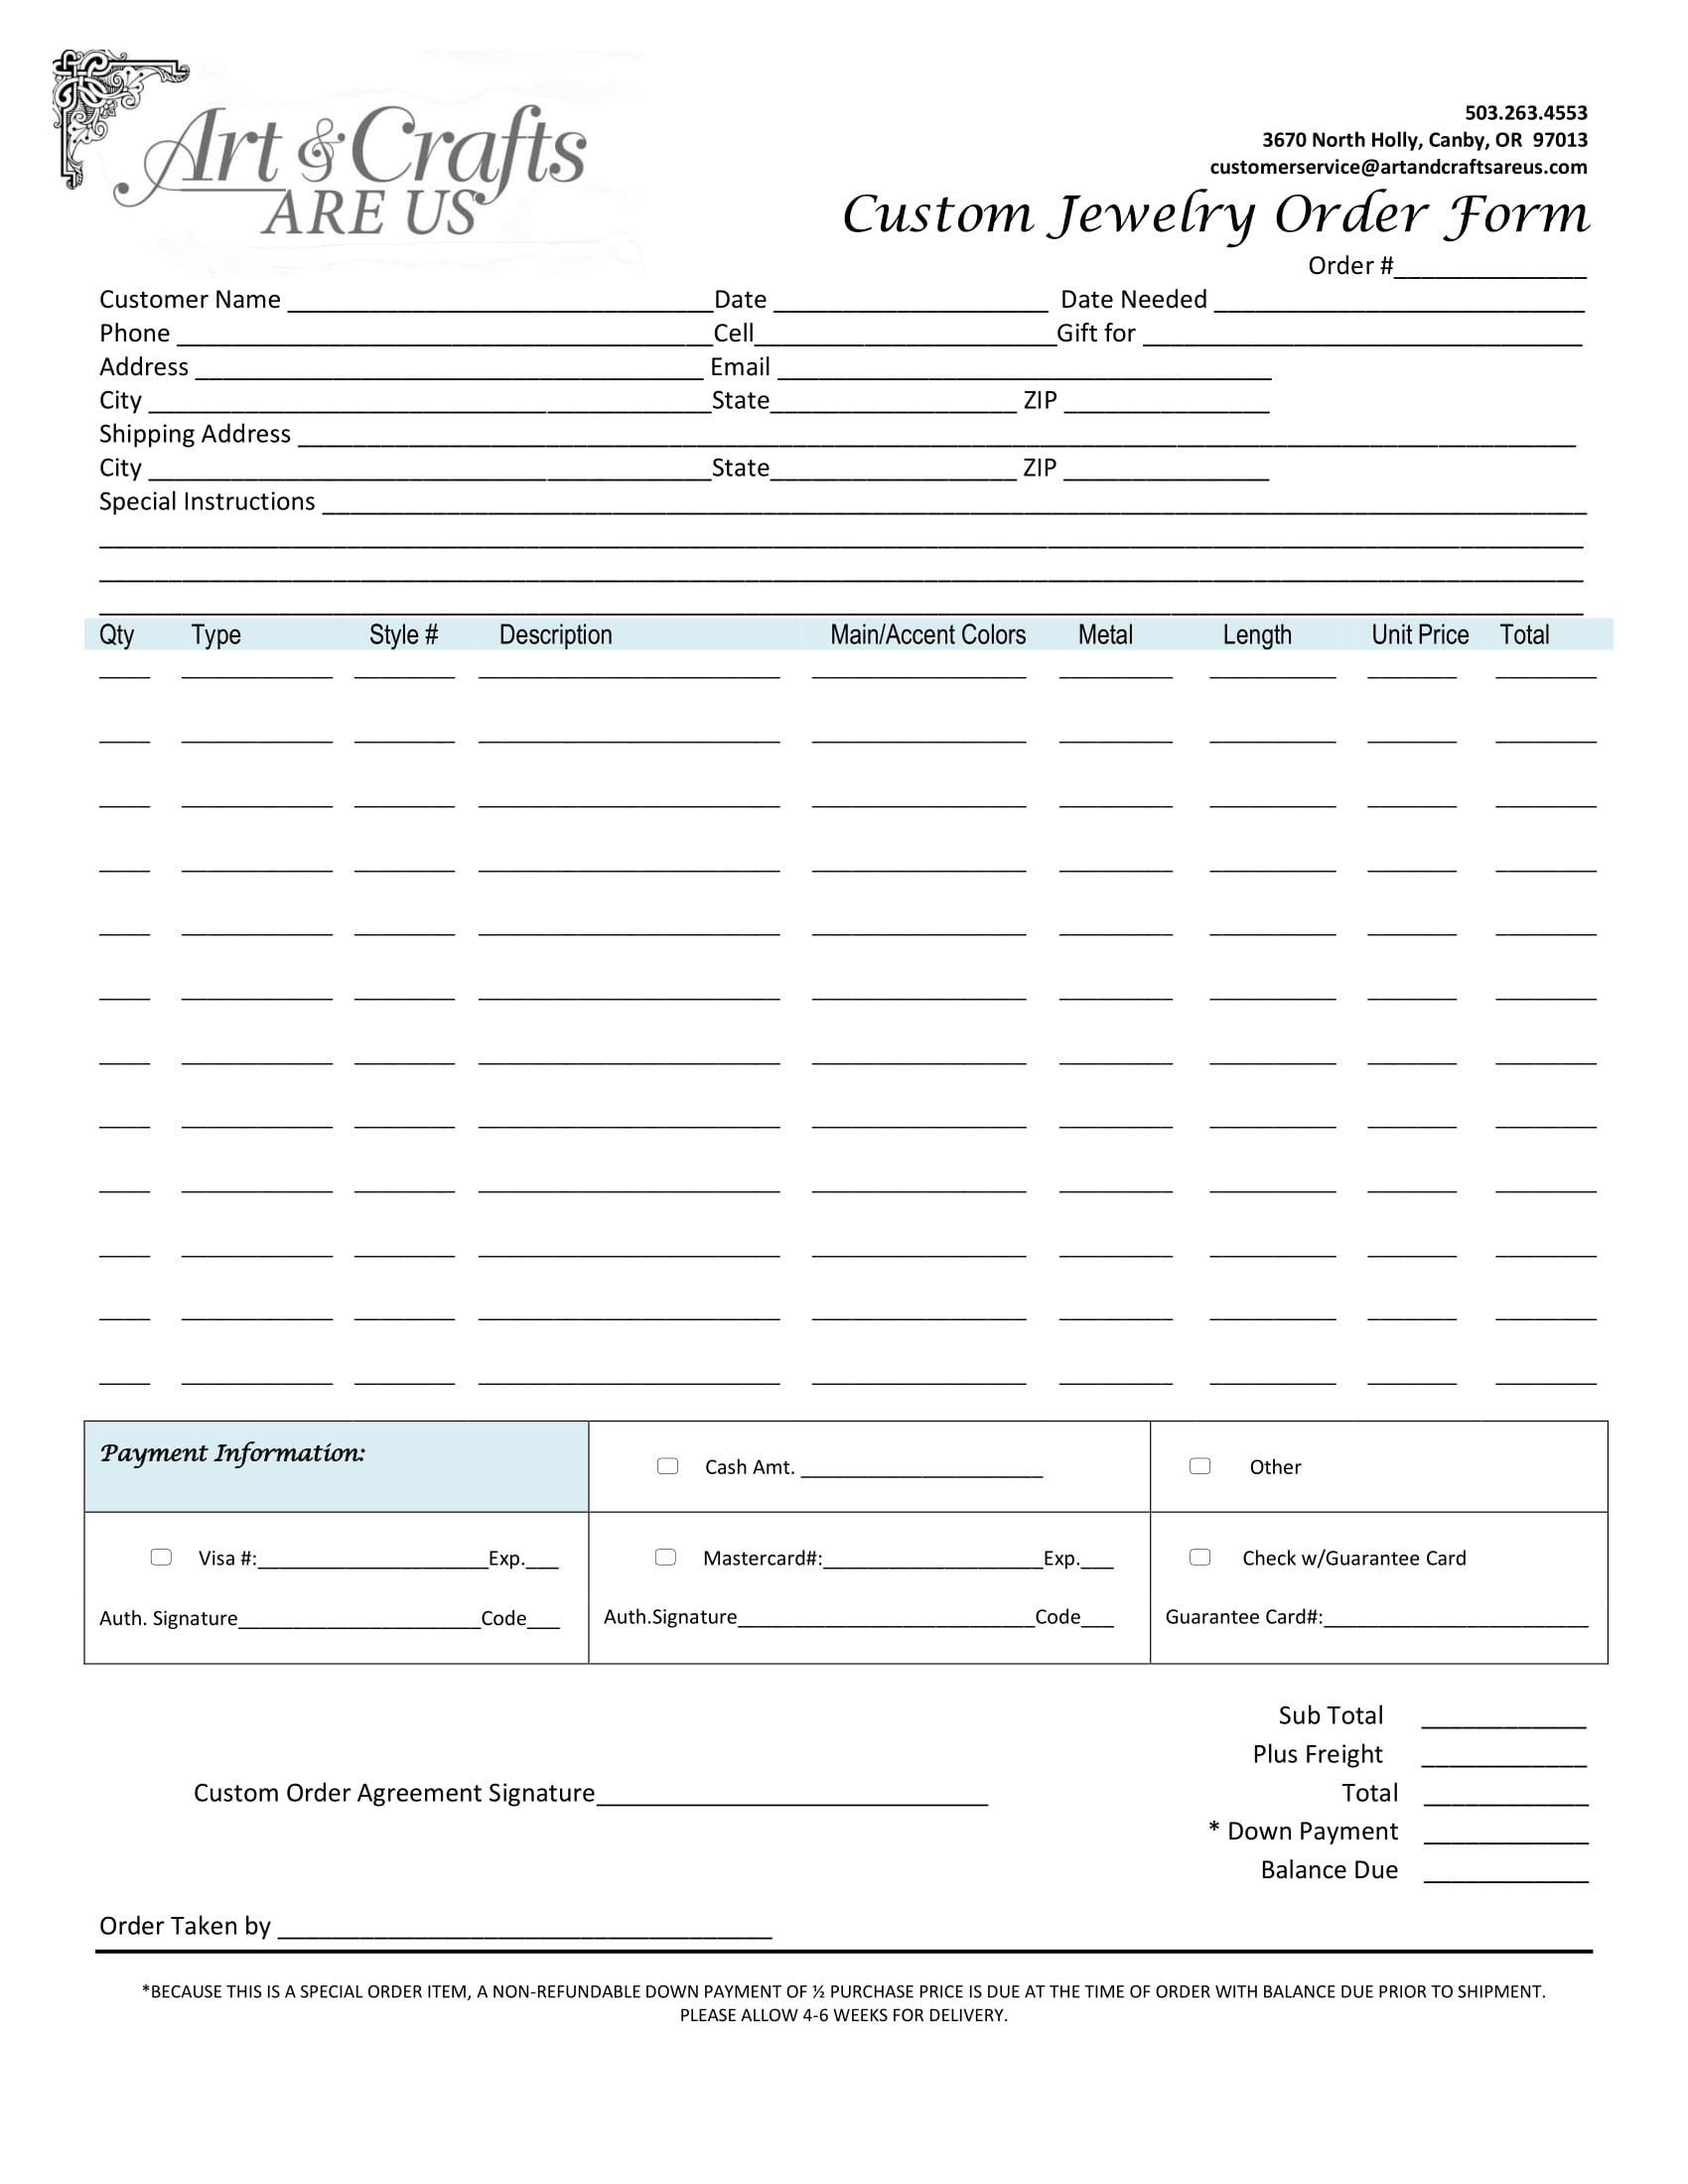 Custom order form Template